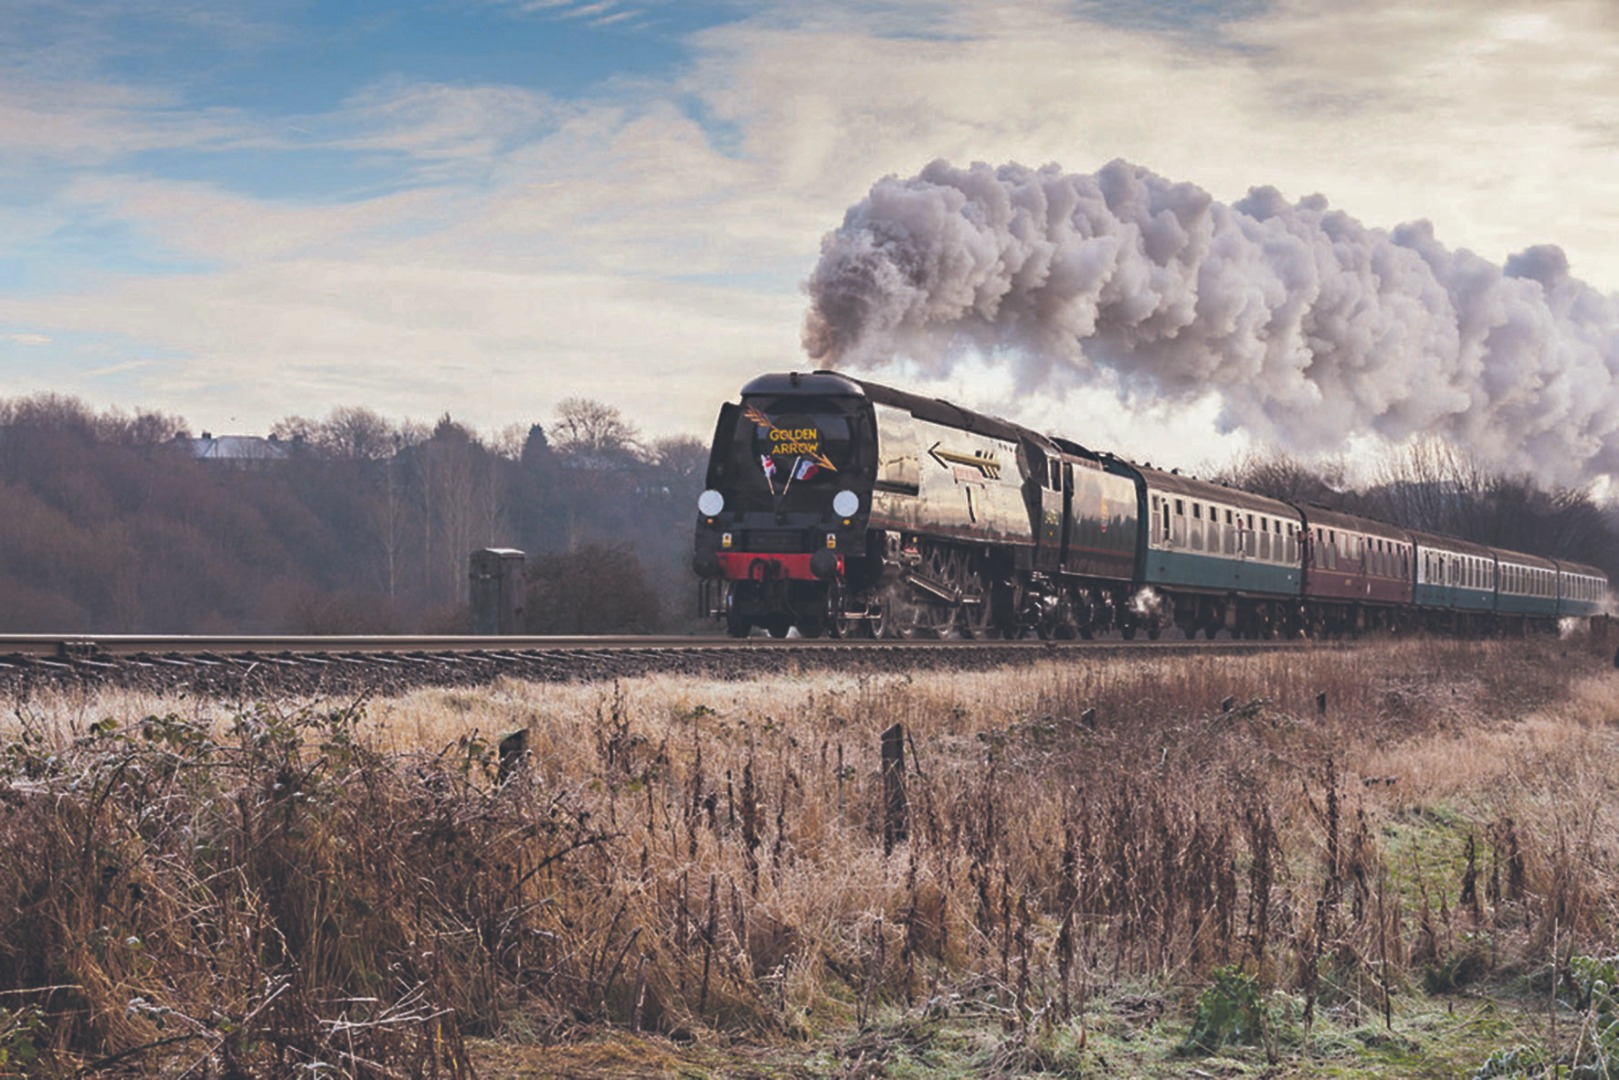 Full steam ahead - Iconic engine to make its new home with ELR